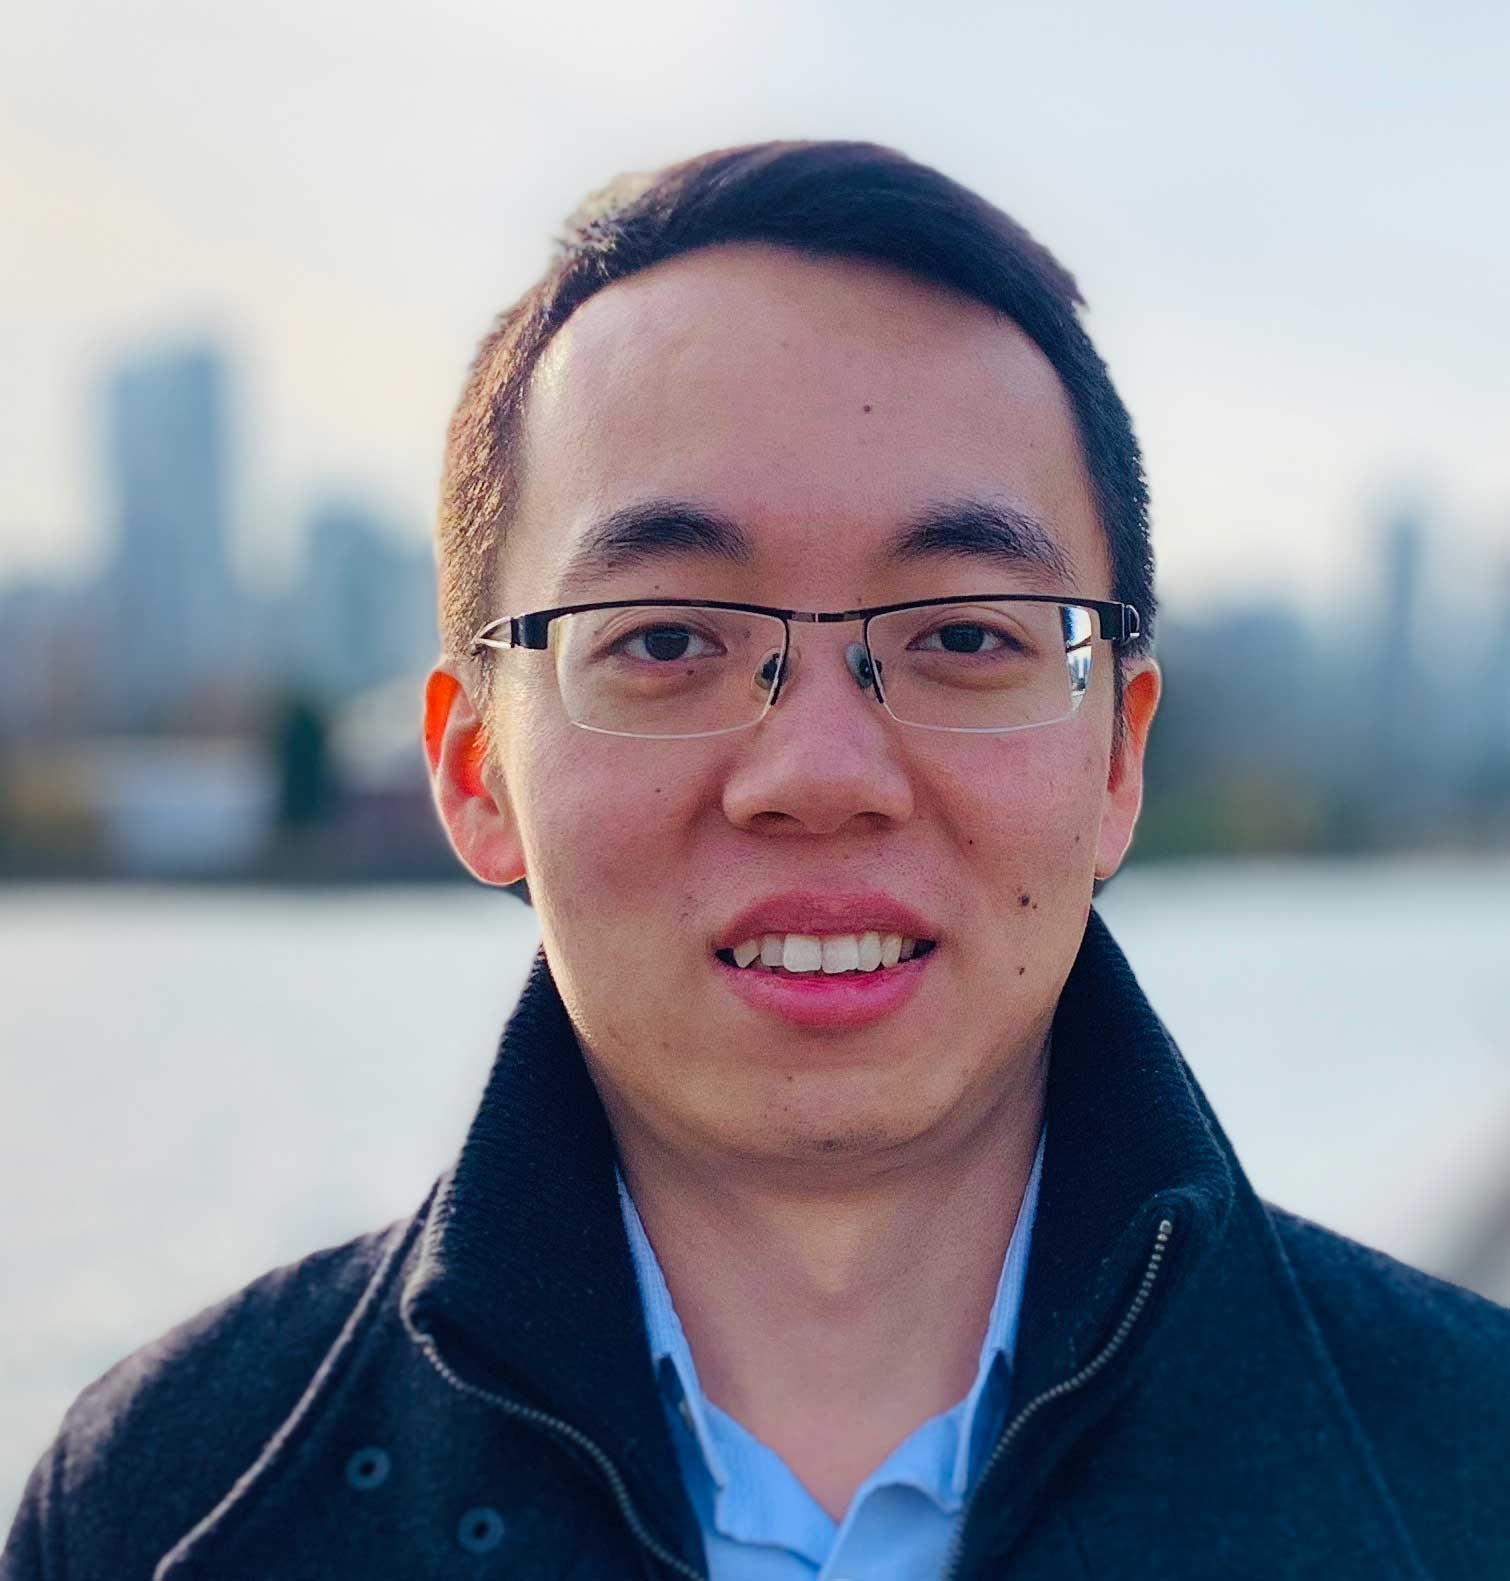 Erjia Yan, PhD, wins $25,000 USD for innovative approaches to citation analysis